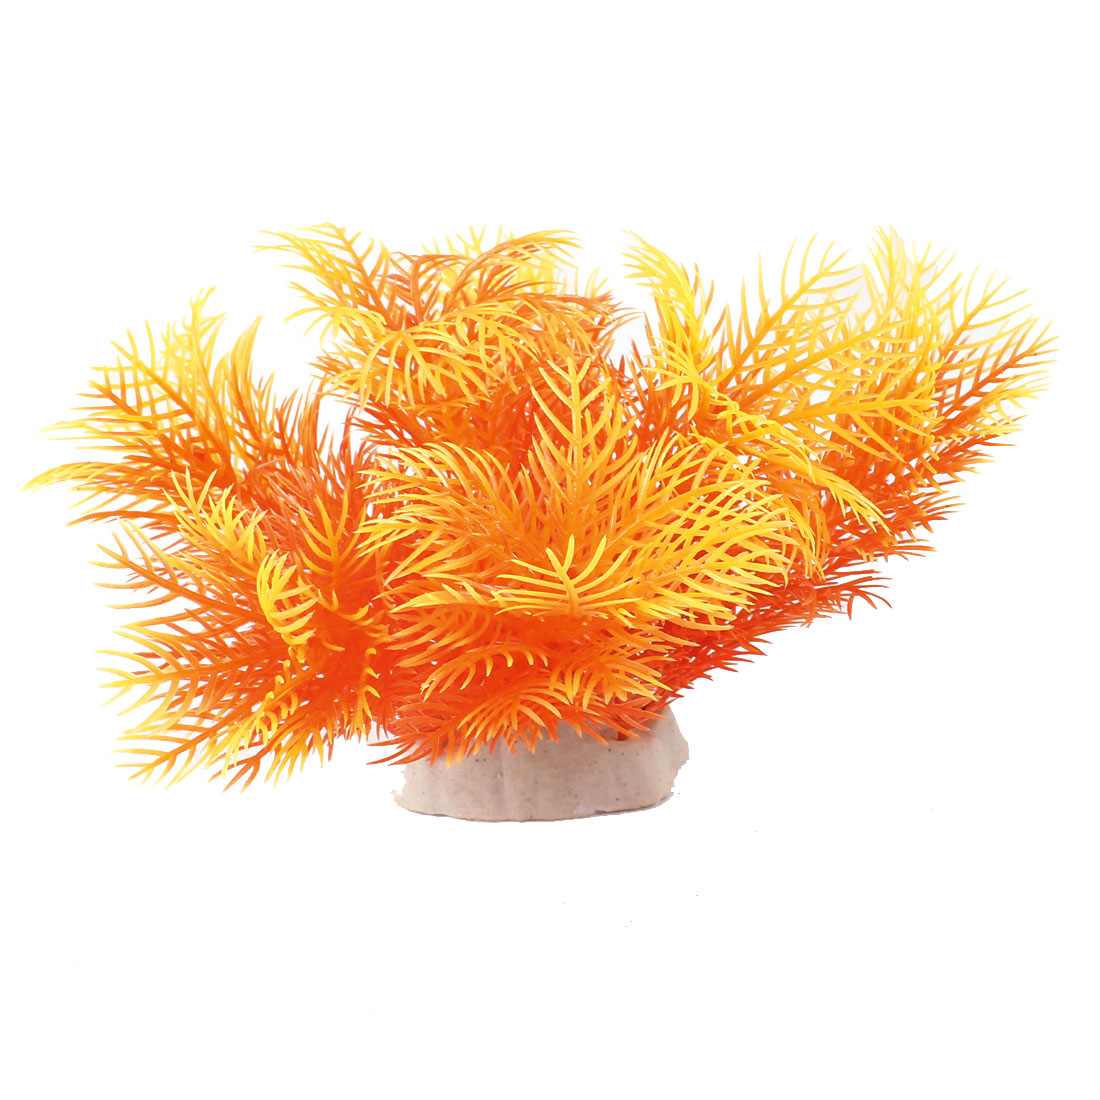 "Aquarium Emulational Aquatic Underwater Plant Orange Yellow 5.1"" Height"